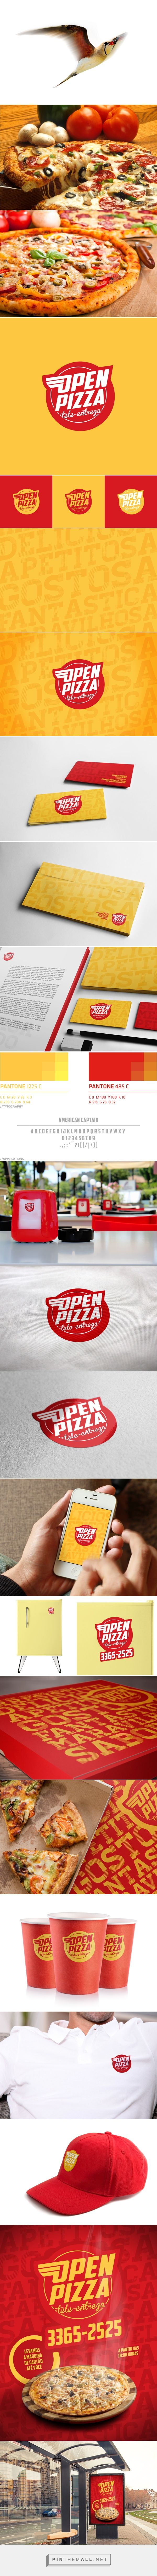 OPEN PIZZA on Behance - - - - - -- - - - - - - - - - - - -... - a grouped images picture - Pin Them All